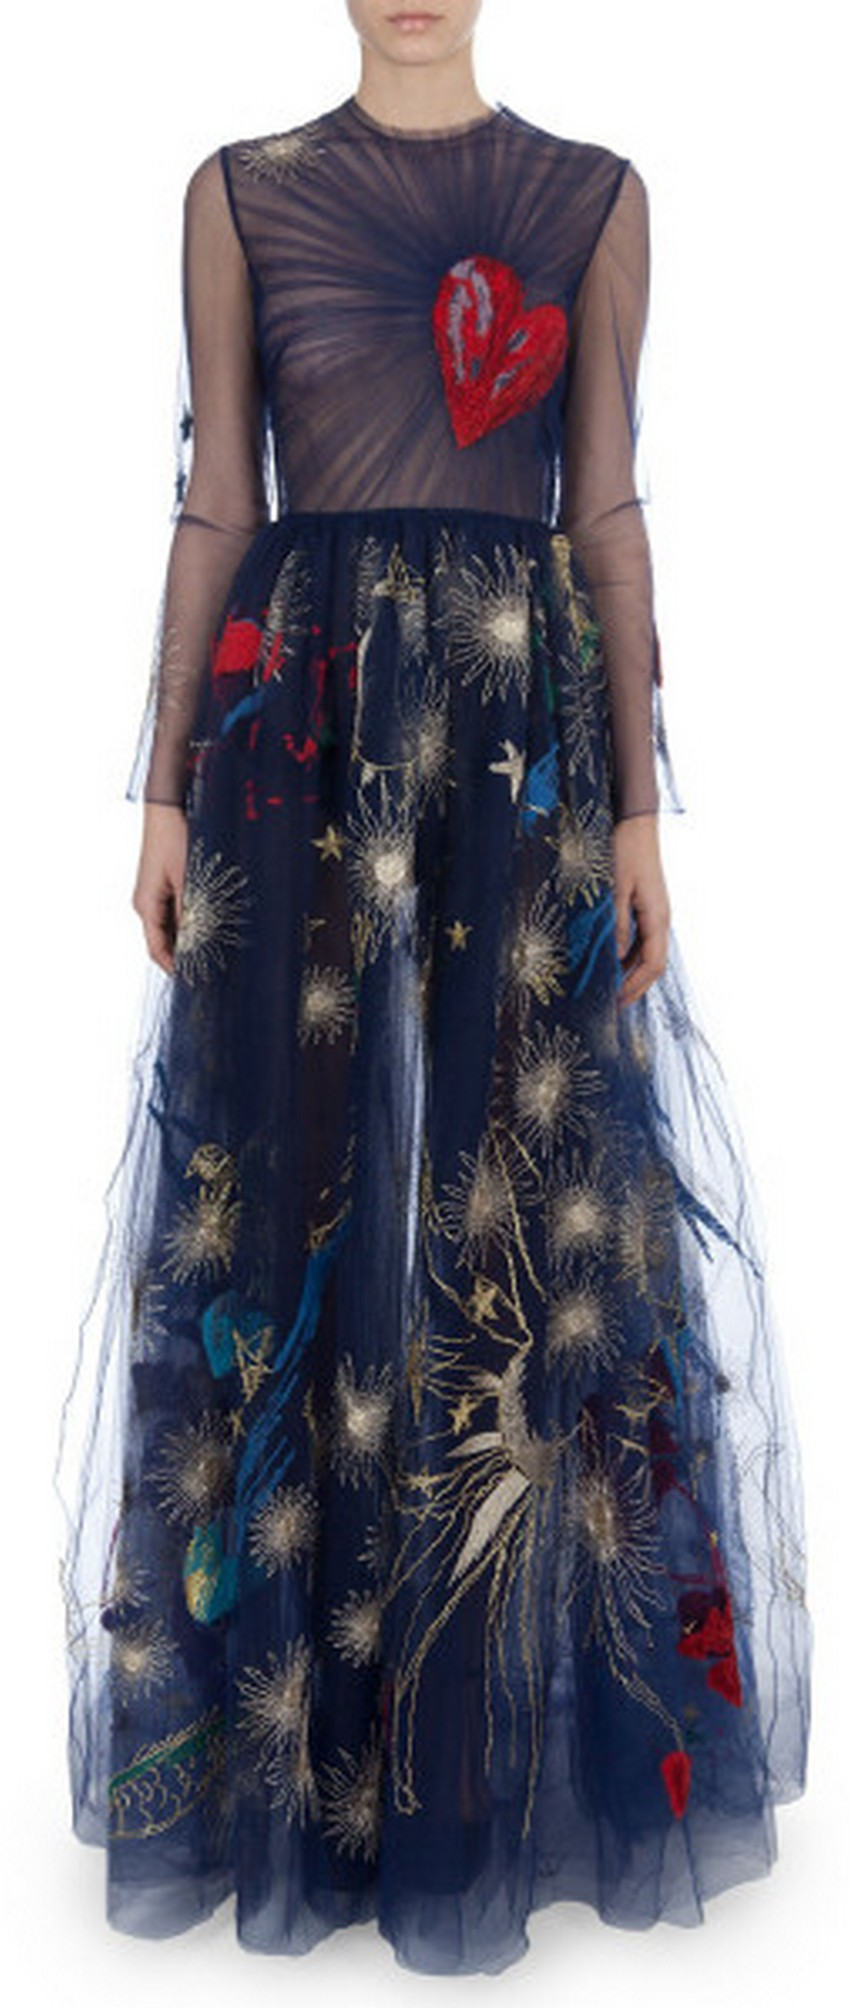 Long Sleeve Heart Embroidered Gown Price 16 900 Most Expensive